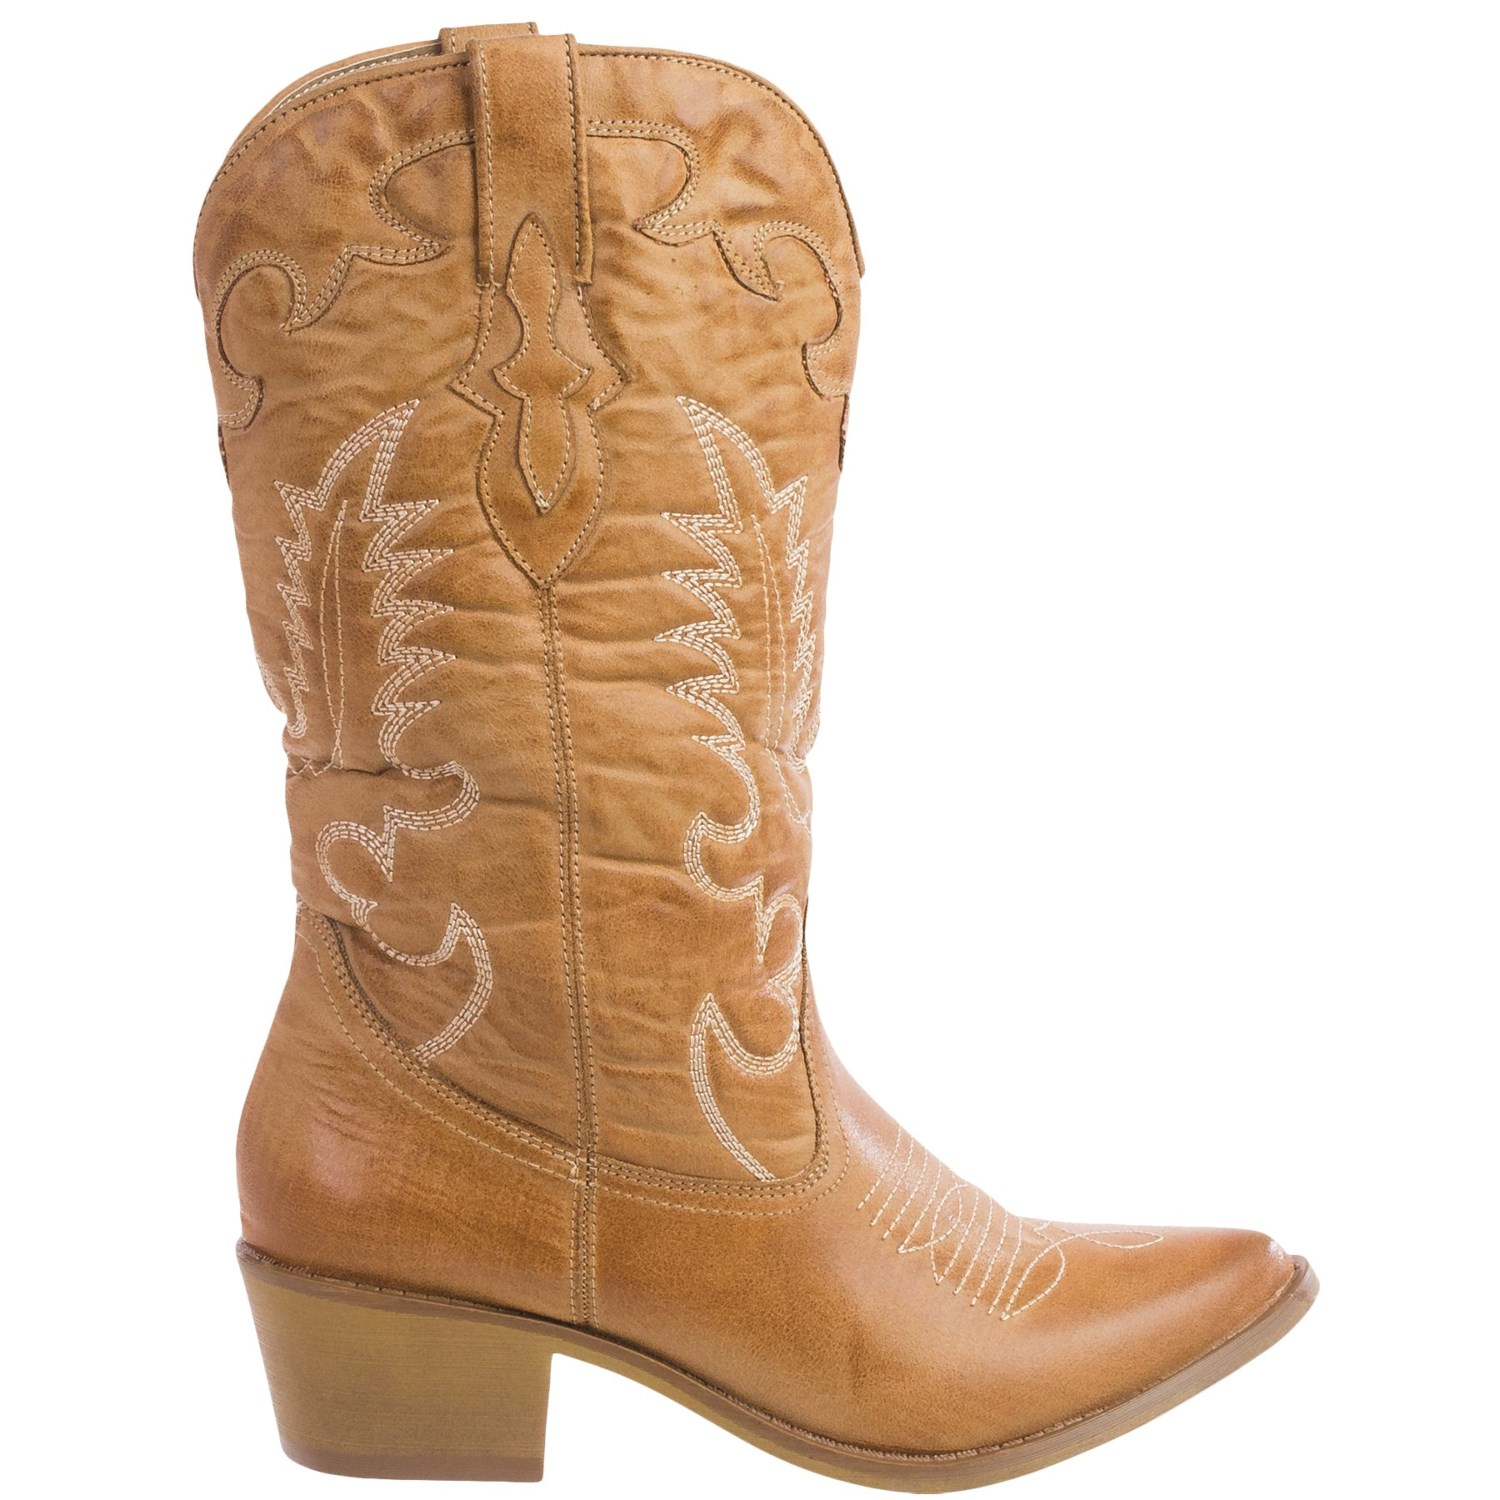 Matisse Desperado Cowboy Boots (For Women) - Save 76%